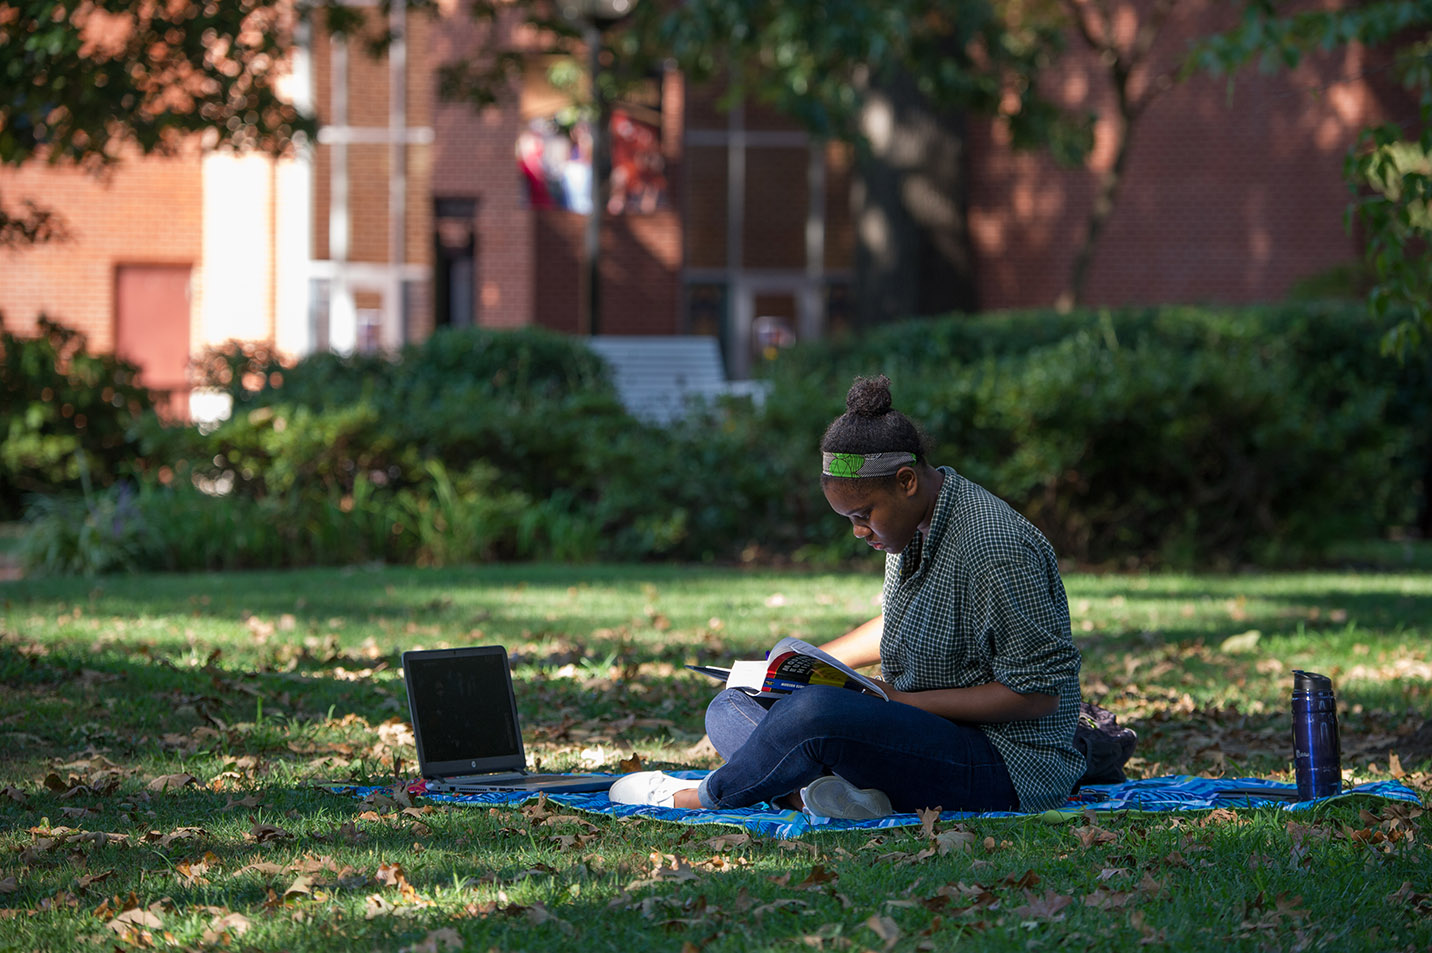 This is a photo of a student studying on the front lawn.